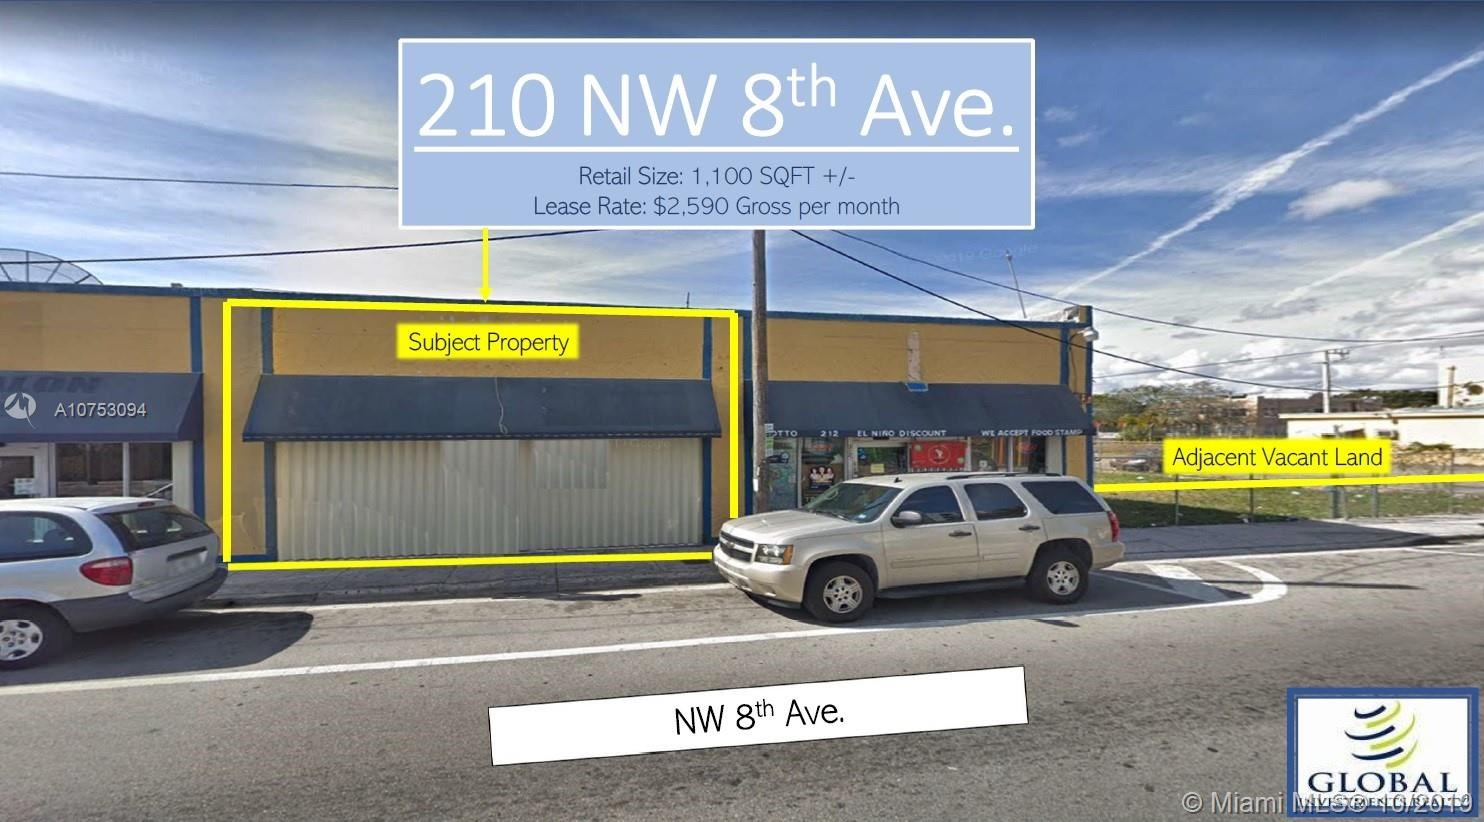 200 NW 8th Ave   210, Miami, FL 33128